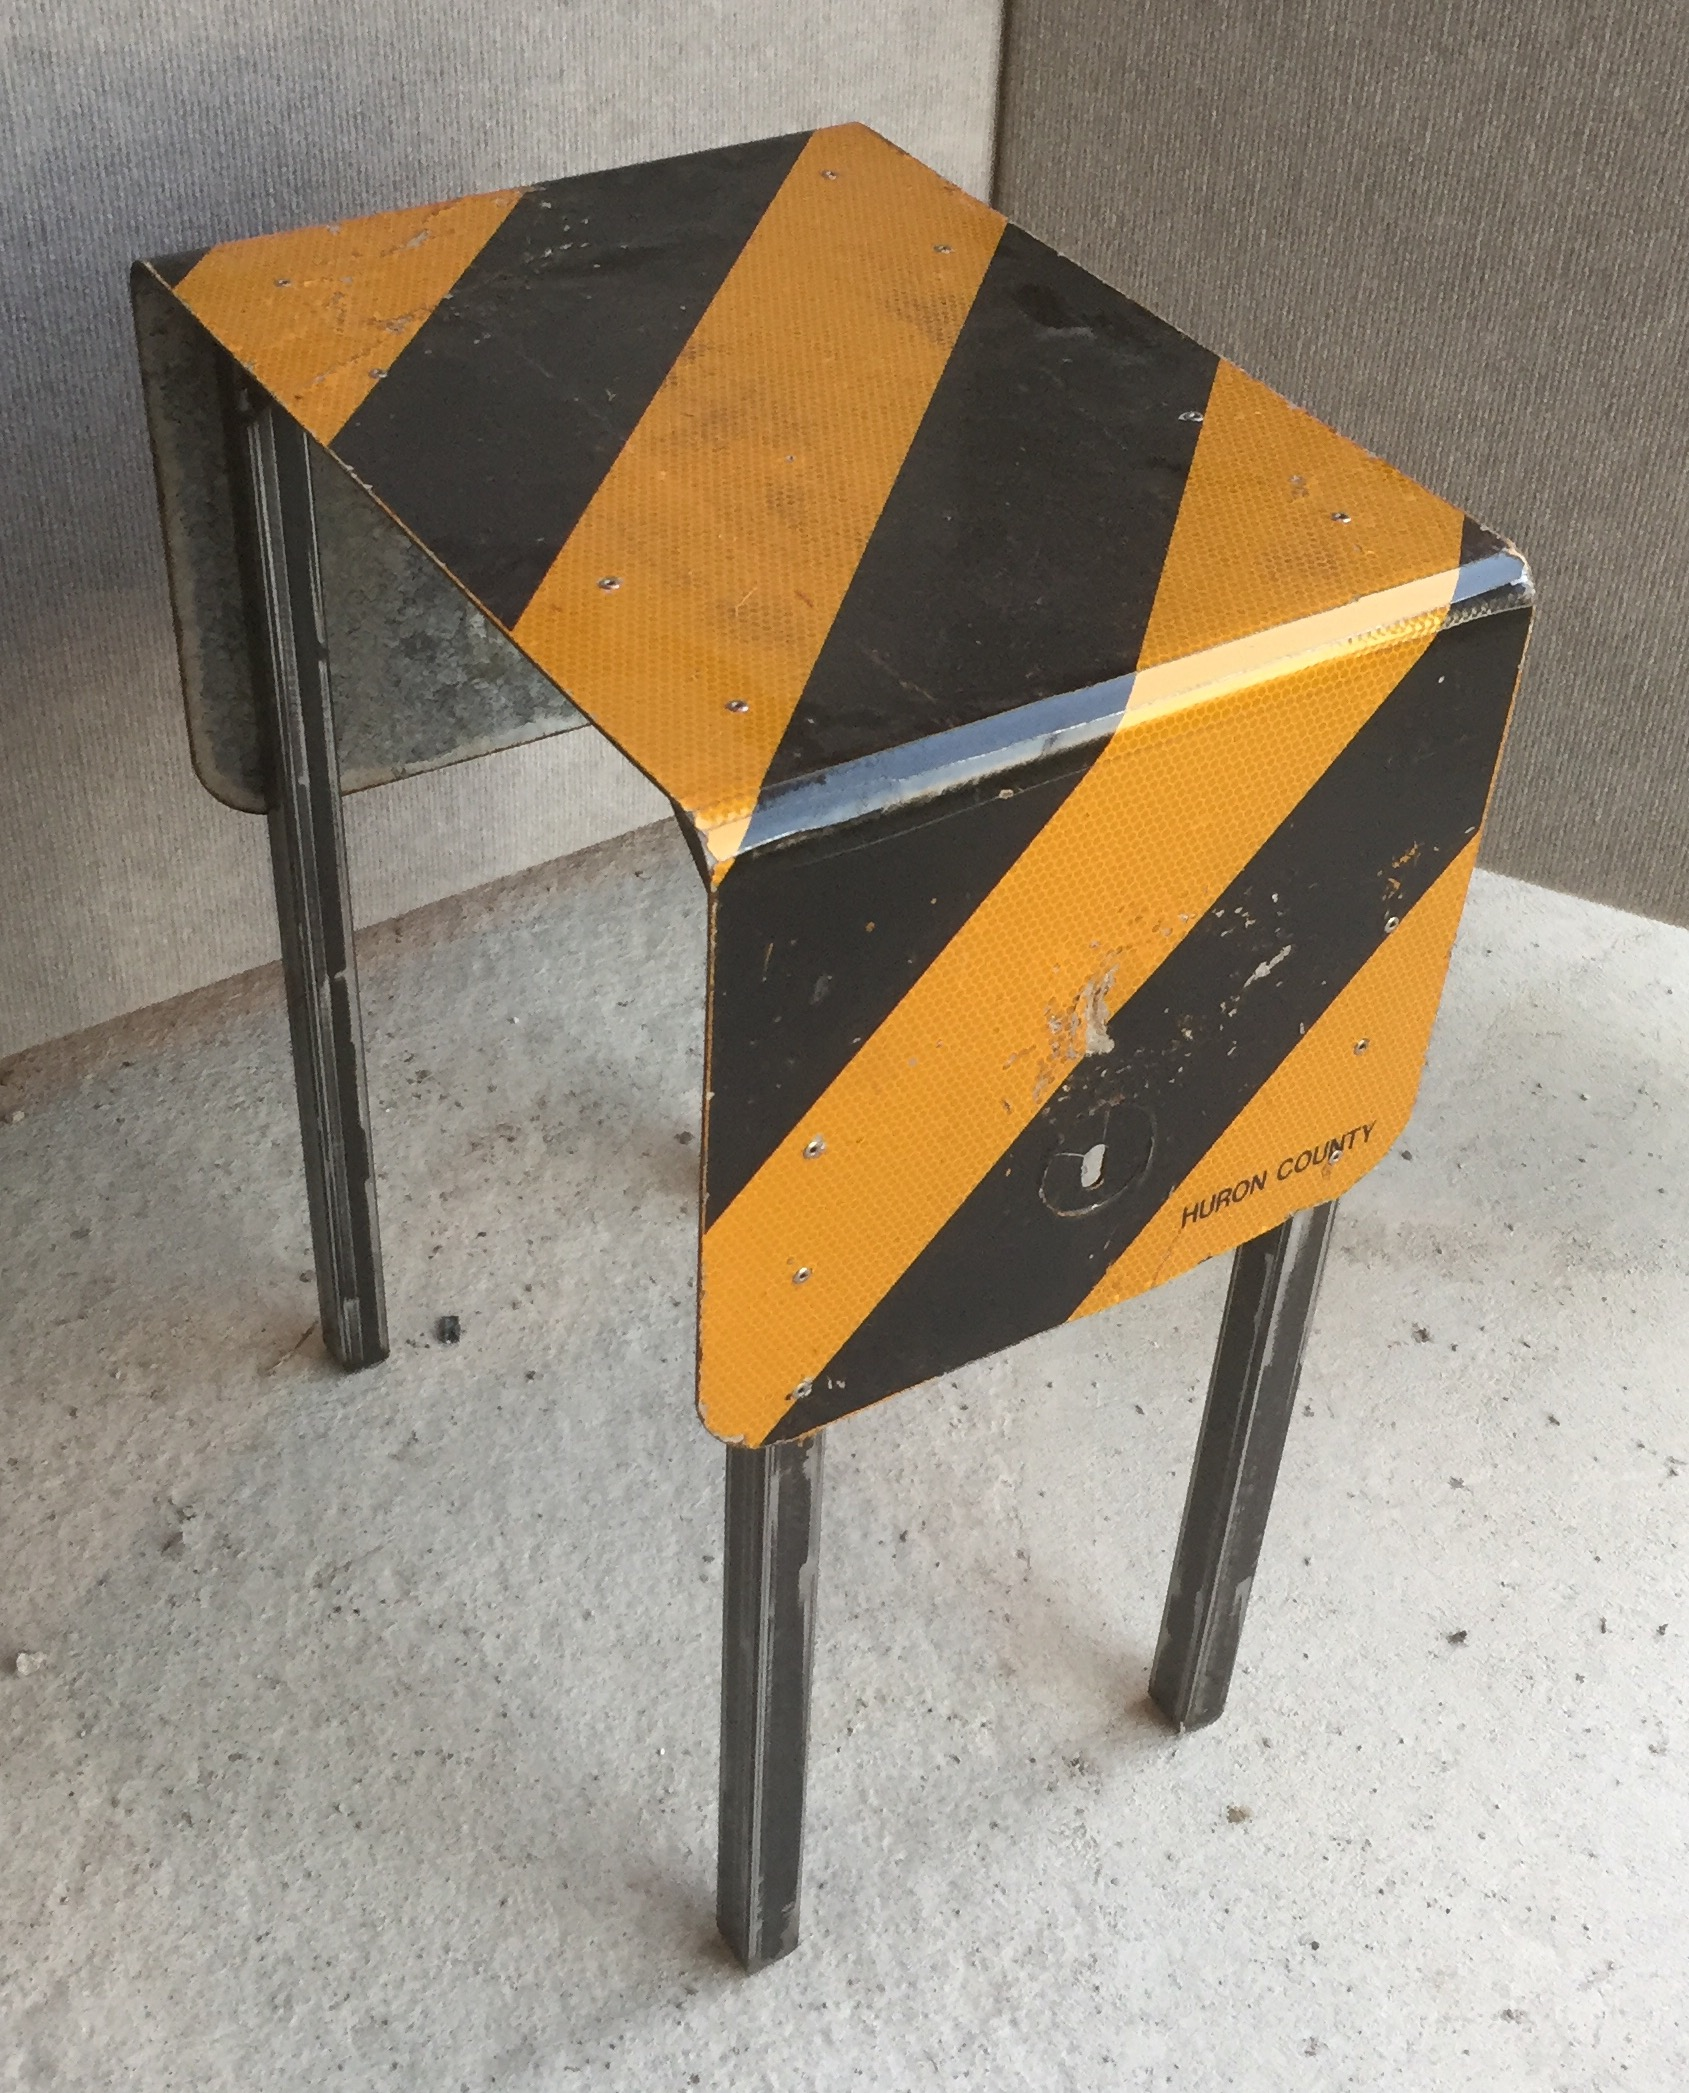 caution side table2.jpg